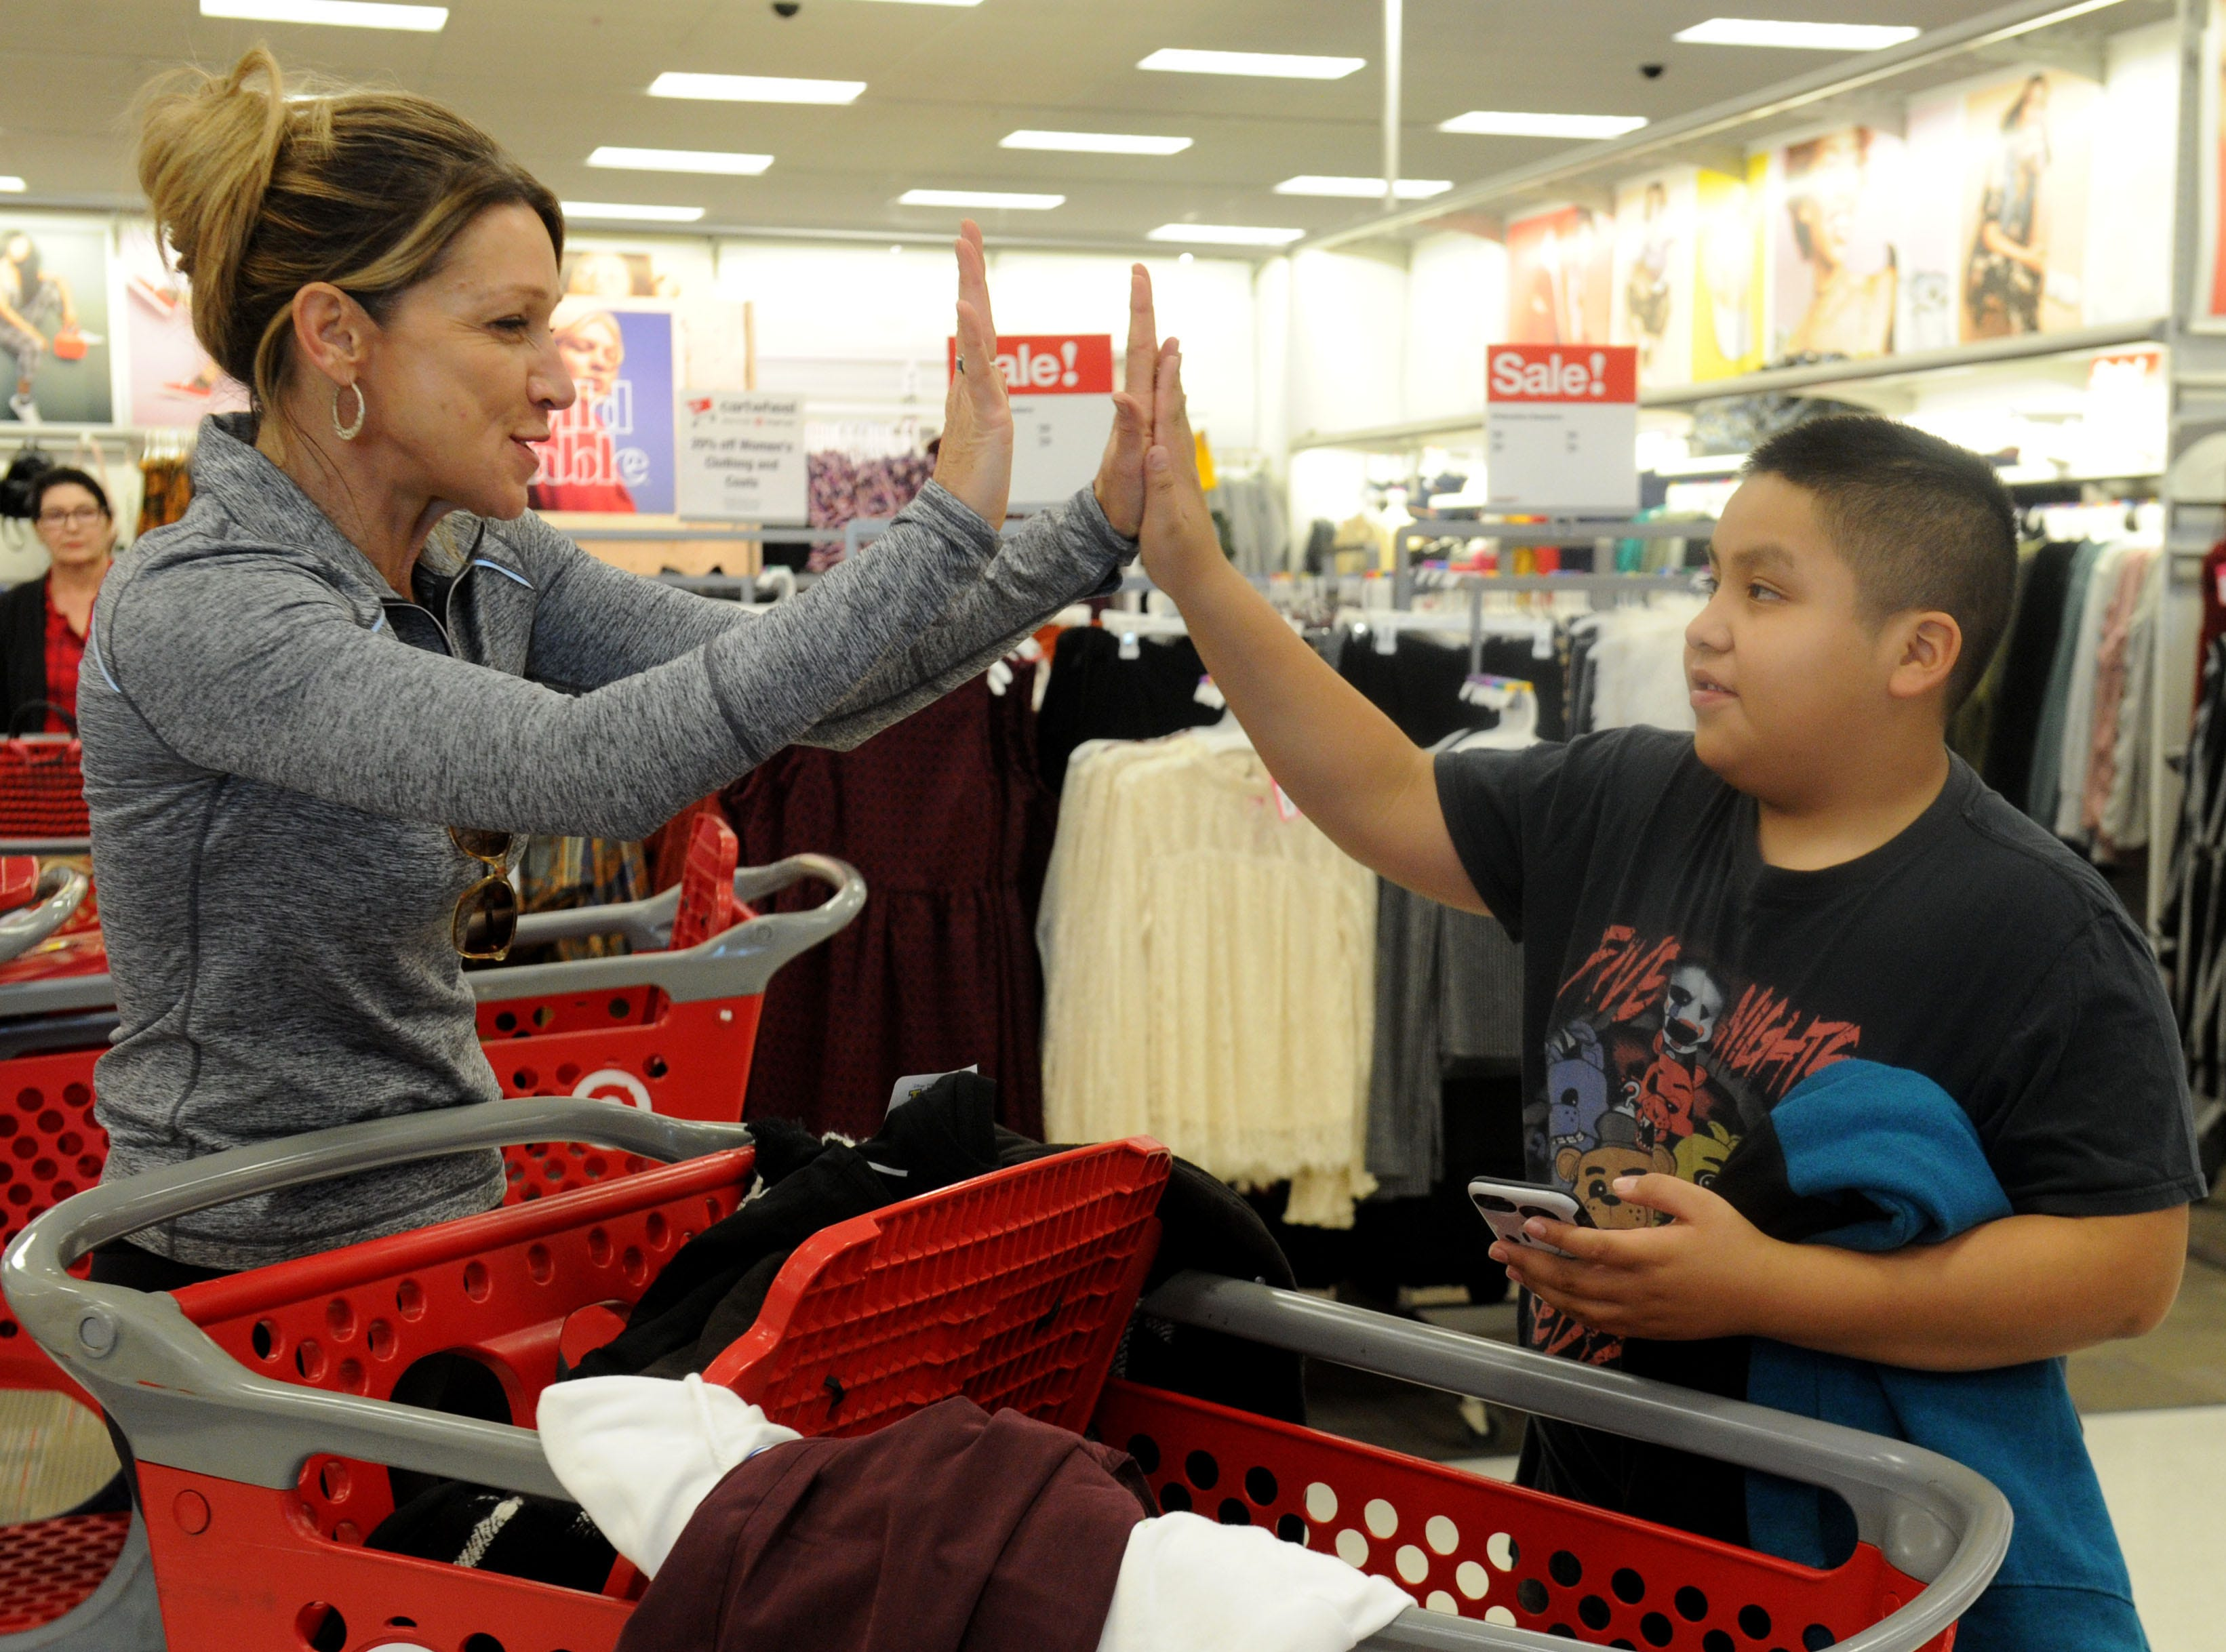 Erin Culbertson, with the Rotary Club of Westlake Village, celebrates with Roberto Aldana after helping him select clothes and Christmas gifts for him and his family. The club hosted a shopping spree at Target for 36 members of the Boys & Girls Club. The children, each with $110 to spend, were paired with 36 volunteers, and they also got two $10 gift cards so they could buy gifts for someone else.